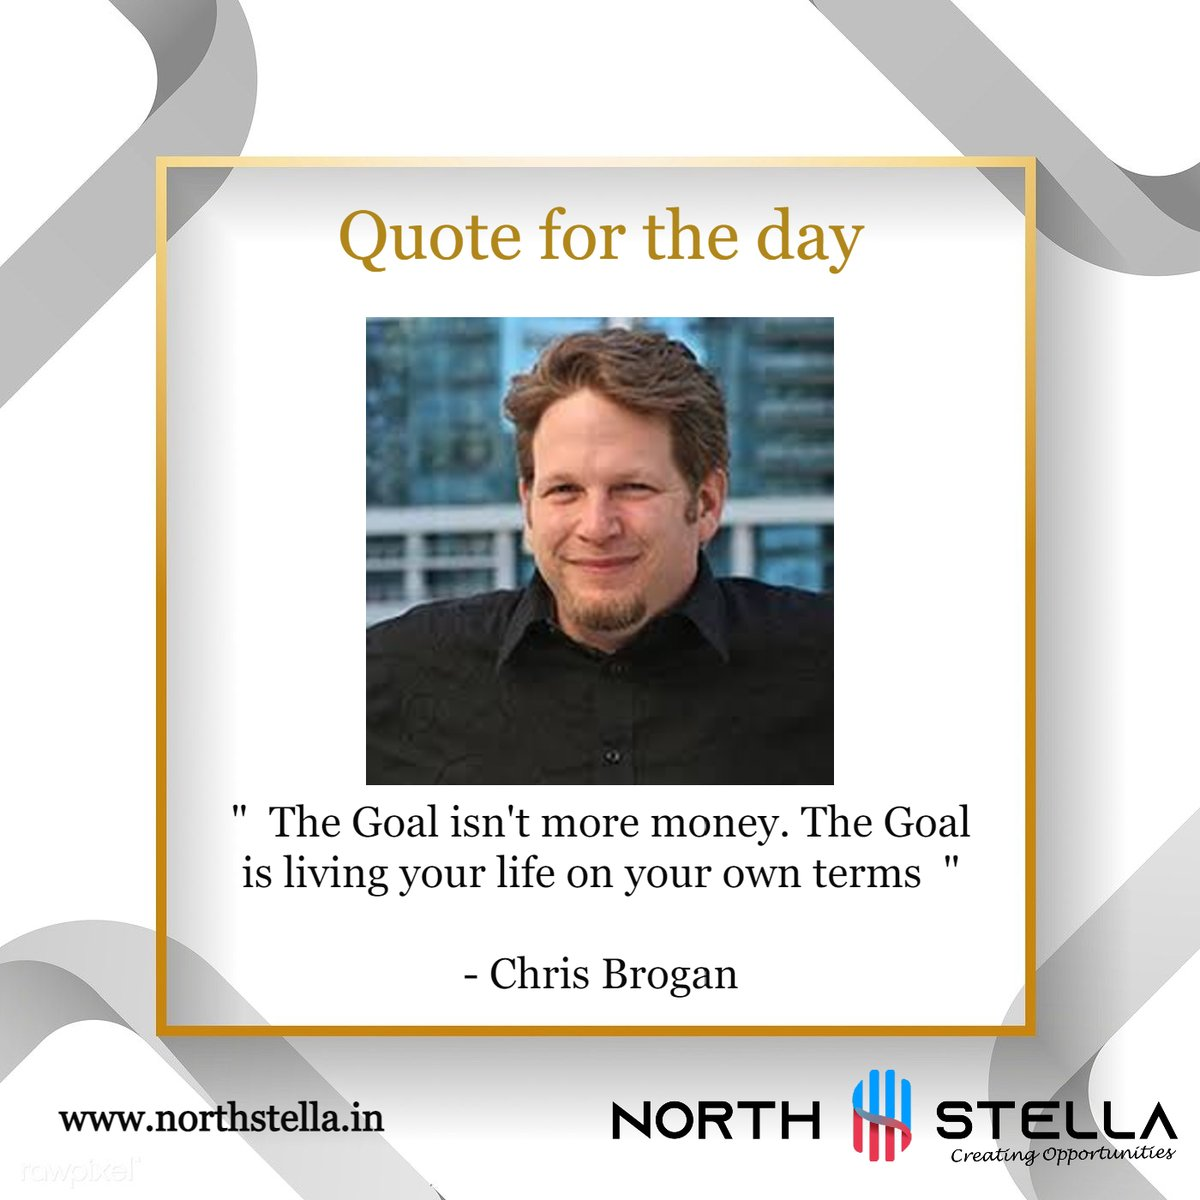 """Quote for the day  """"  The goal isn't more money. The Goal is living your life on your own terms  """"   - Chris Brogan  #NorthStellaWealth #financialplanning #wealthmanagement #financialservices #Wealthmanagementservices #Quotefortheday #quoteoftheday #MoneyQuotes #FinancialQuotes"""